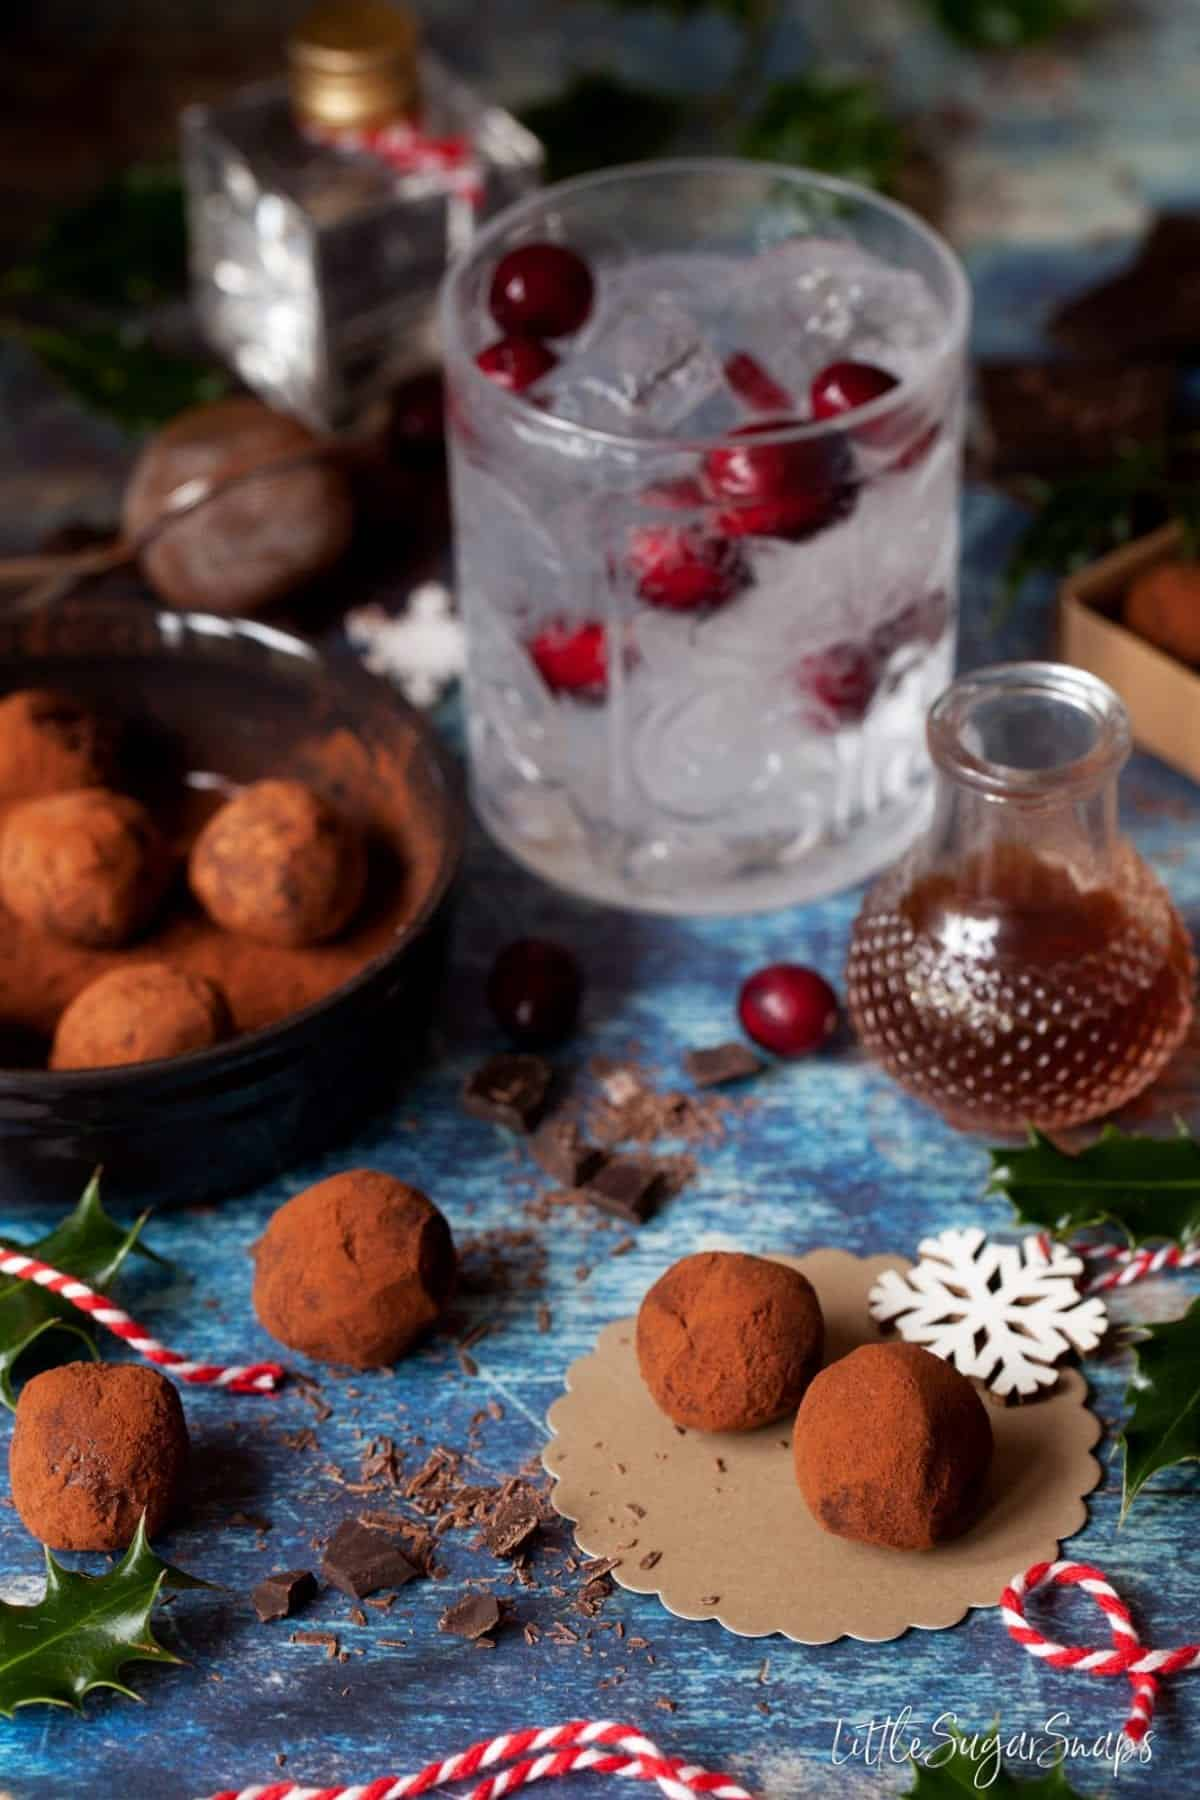 a gin and tonic with cranberries alongside a small bottle of tonic syrup and gin chocolates rolled in cocoa powder